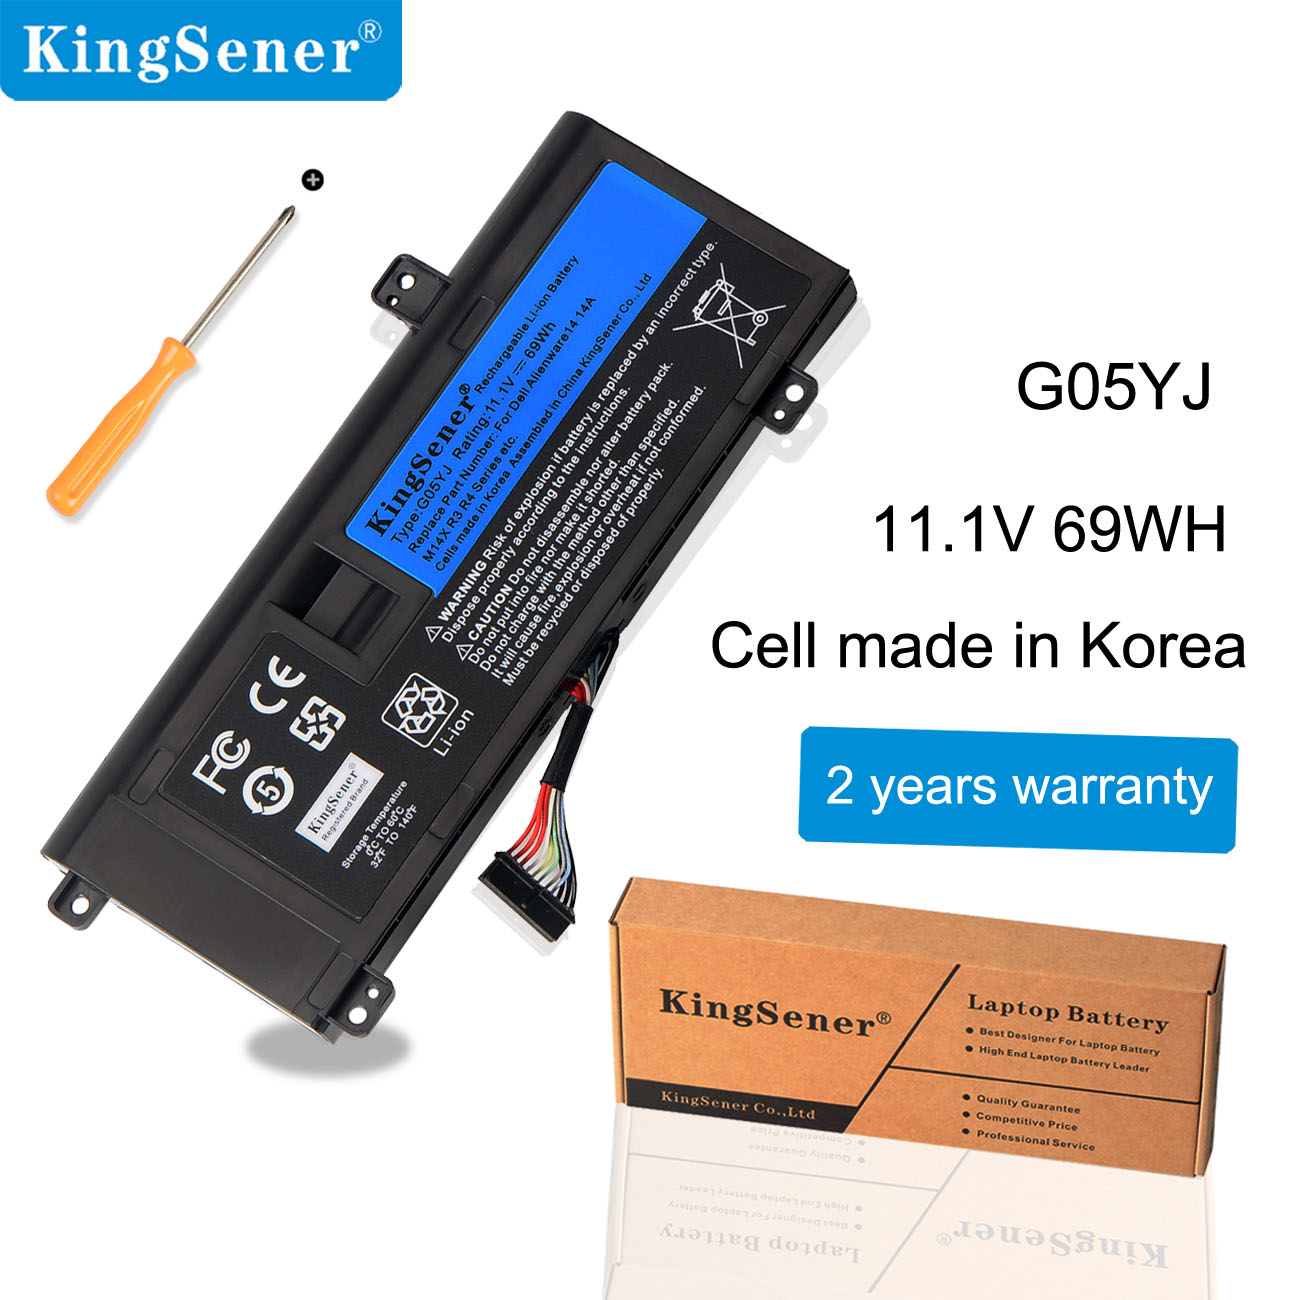 KingSener G05YJ Laptop Battery For DELL Alienware 14 A14 M14X R3 R4 Series P39G Alienware 14D-1528 GO5YJ Y3PN0 8X70T 69WH